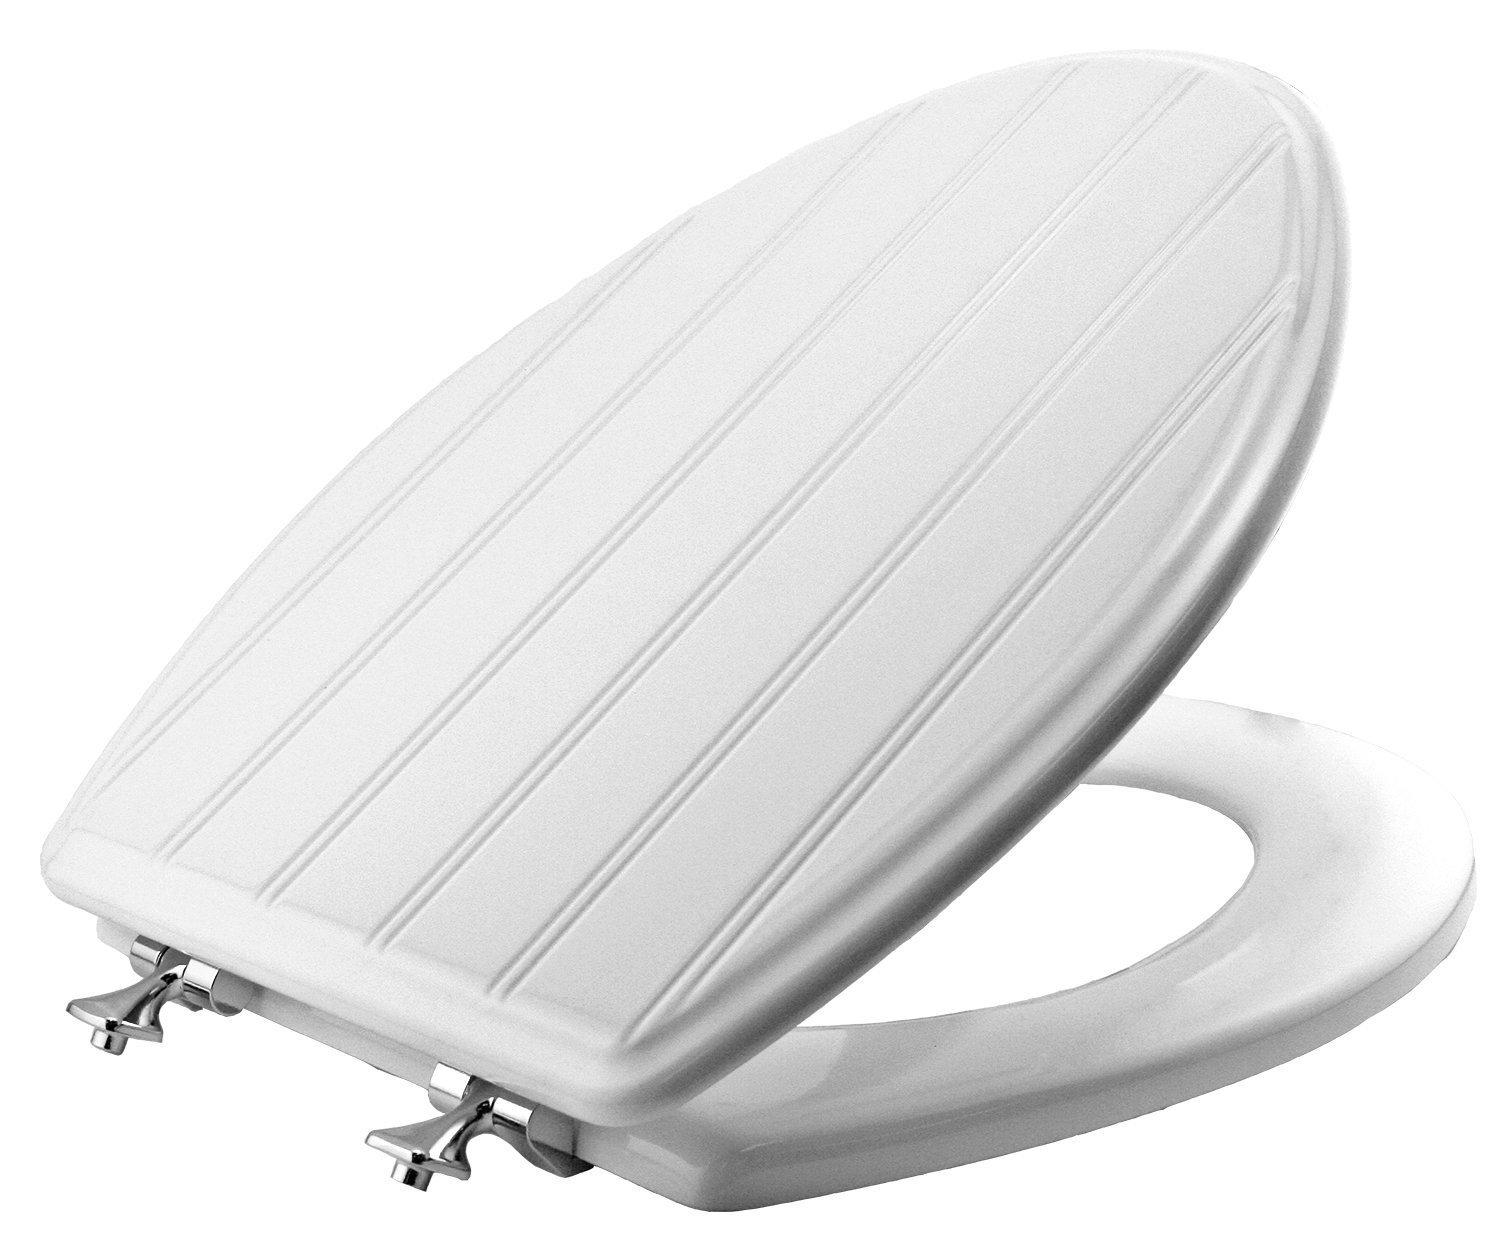 Mayfair Cottage Classic Sculptured Molded Wood Toilet Seat with STA-TITE Seat Fastening System & Chrome Hinges, Elongated, White, 129CPA 000